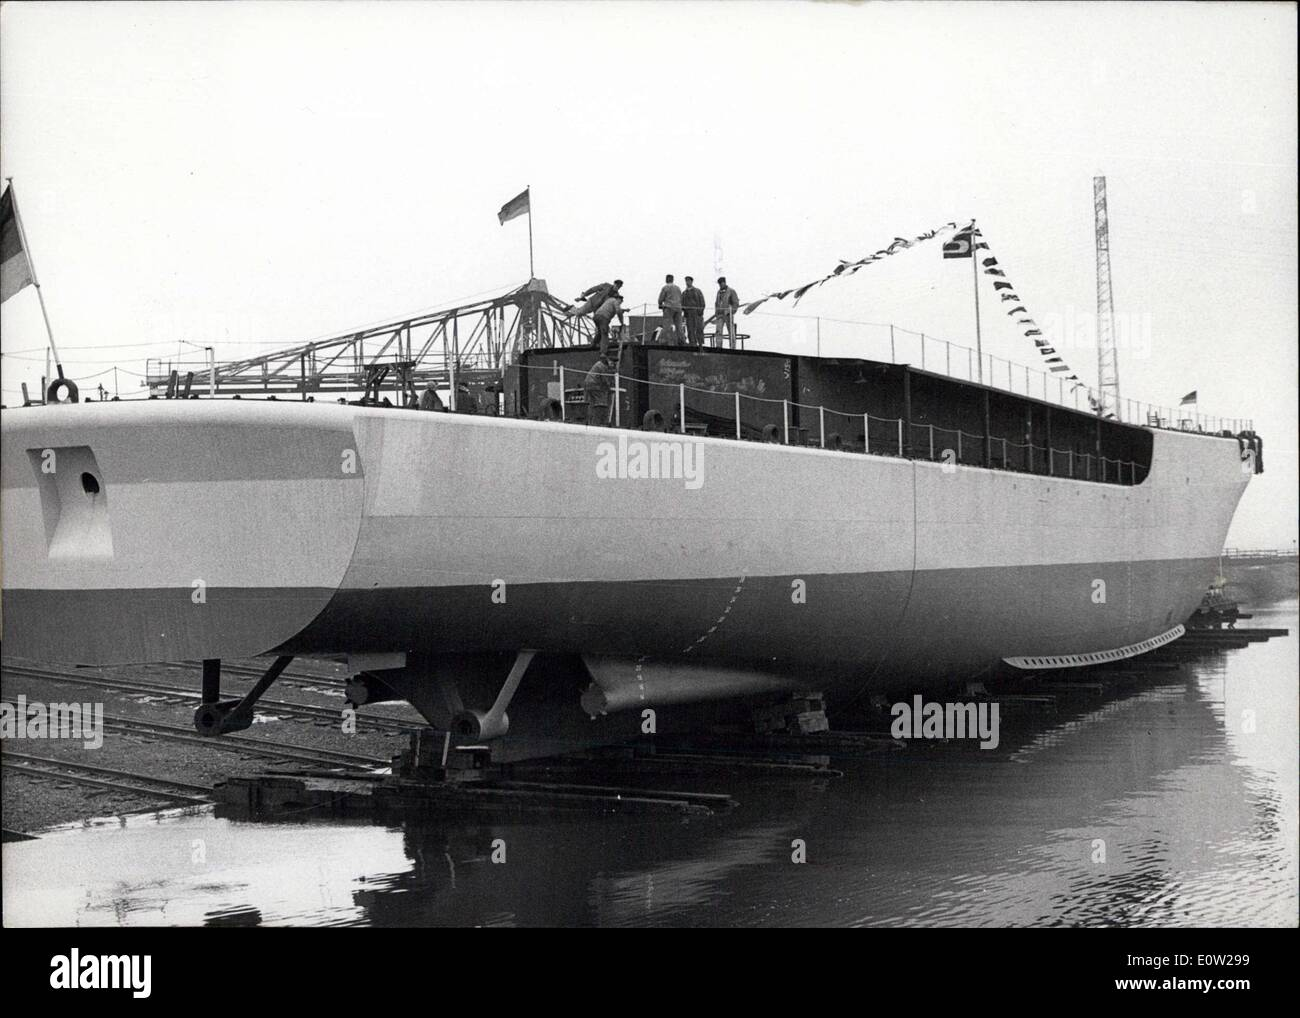 Dec. 16, 1960 - The 100th ship for the German Navy launched: On Dec.15th, in Hamburg the 100th ship for the Germany Navy that was built in Germany, was launched. The Ship is equipped with 6 Mercedes- Benz motors of the type MB 839 BB. Each motor has a capacity of 2280 HP. The Ship was named ''Mosel' - Stock Image